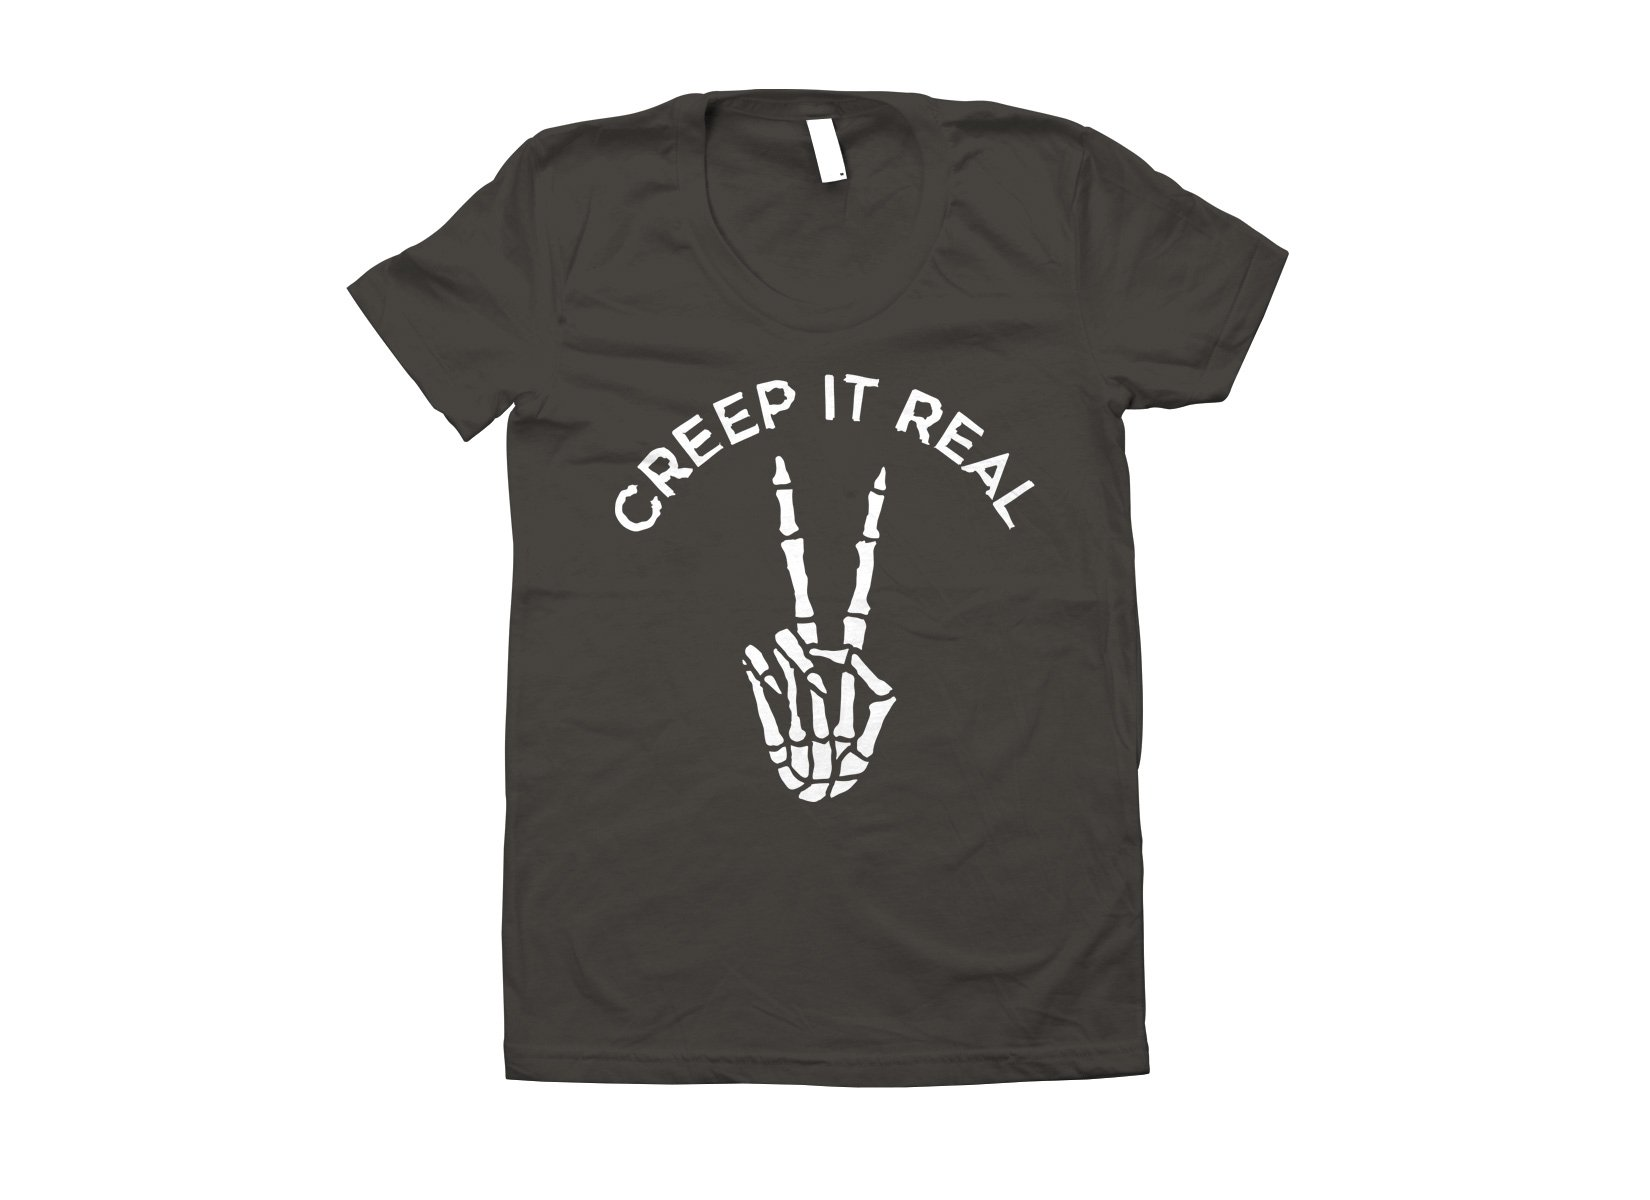 Creep It Real on Juniors T-Shirt